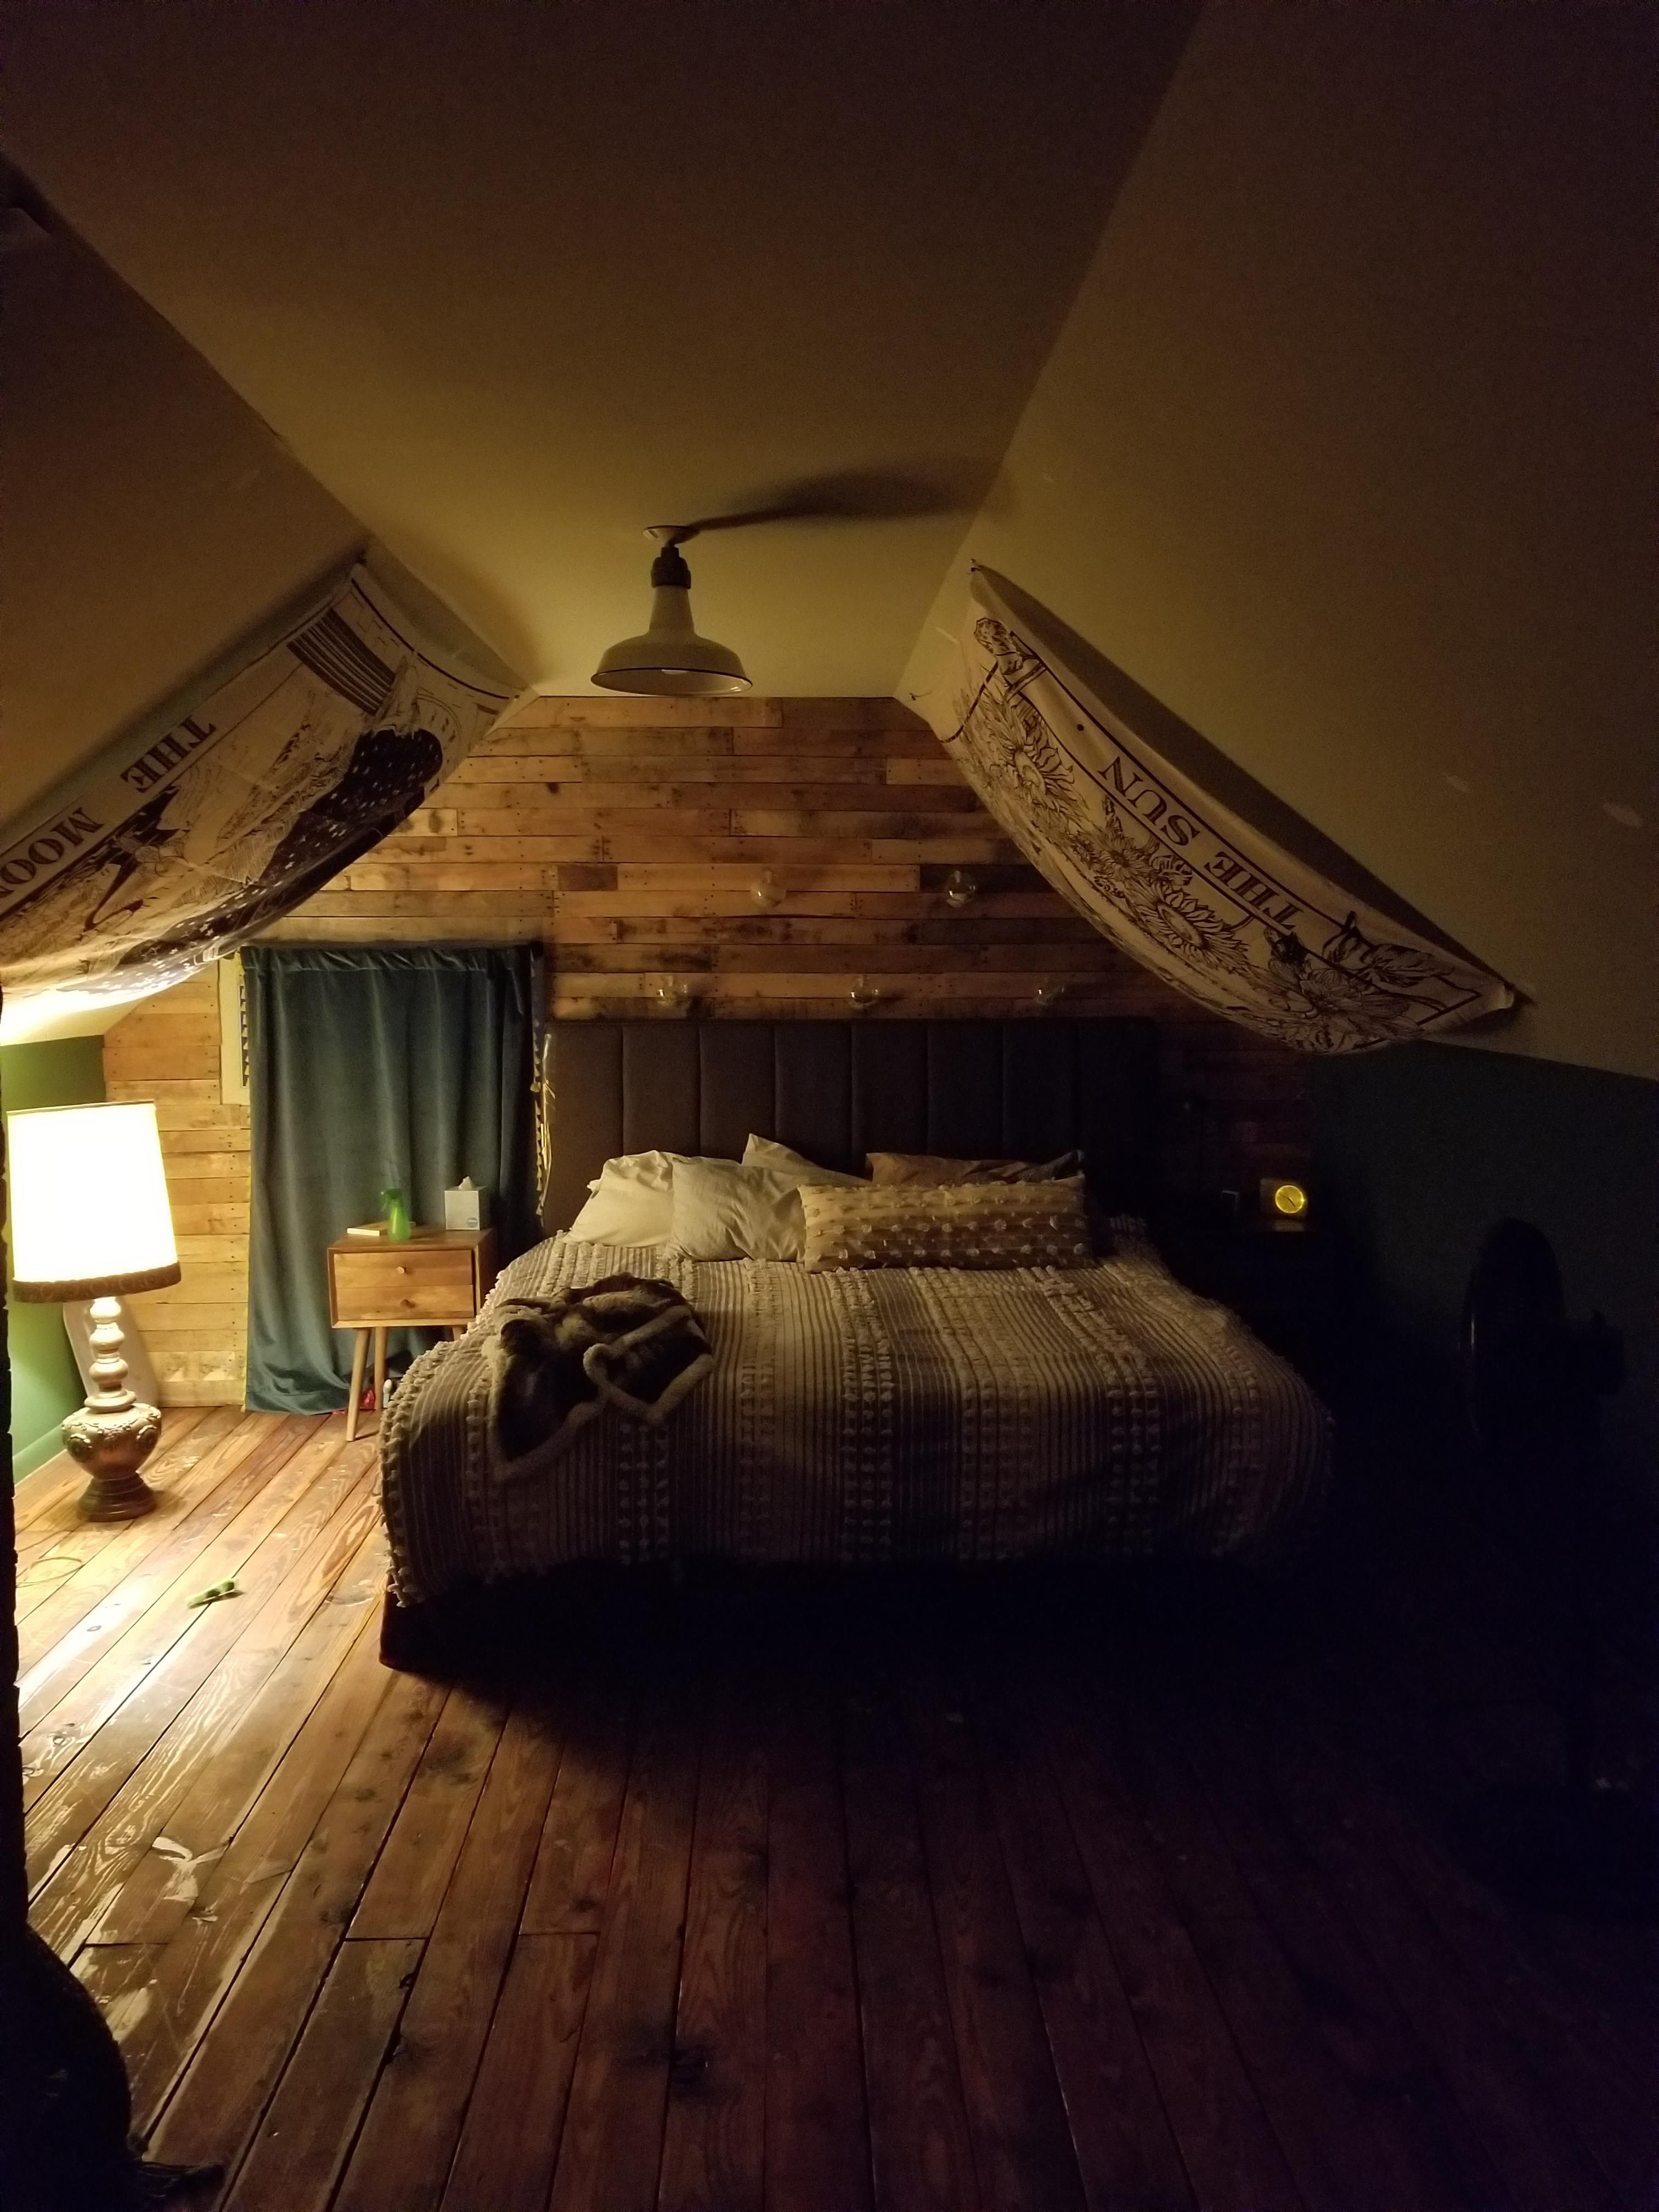 My Bedroom Attic It Isn T Much But It S Home In 2020 Home Decor Comfortable Bedroom Creative Home Decor